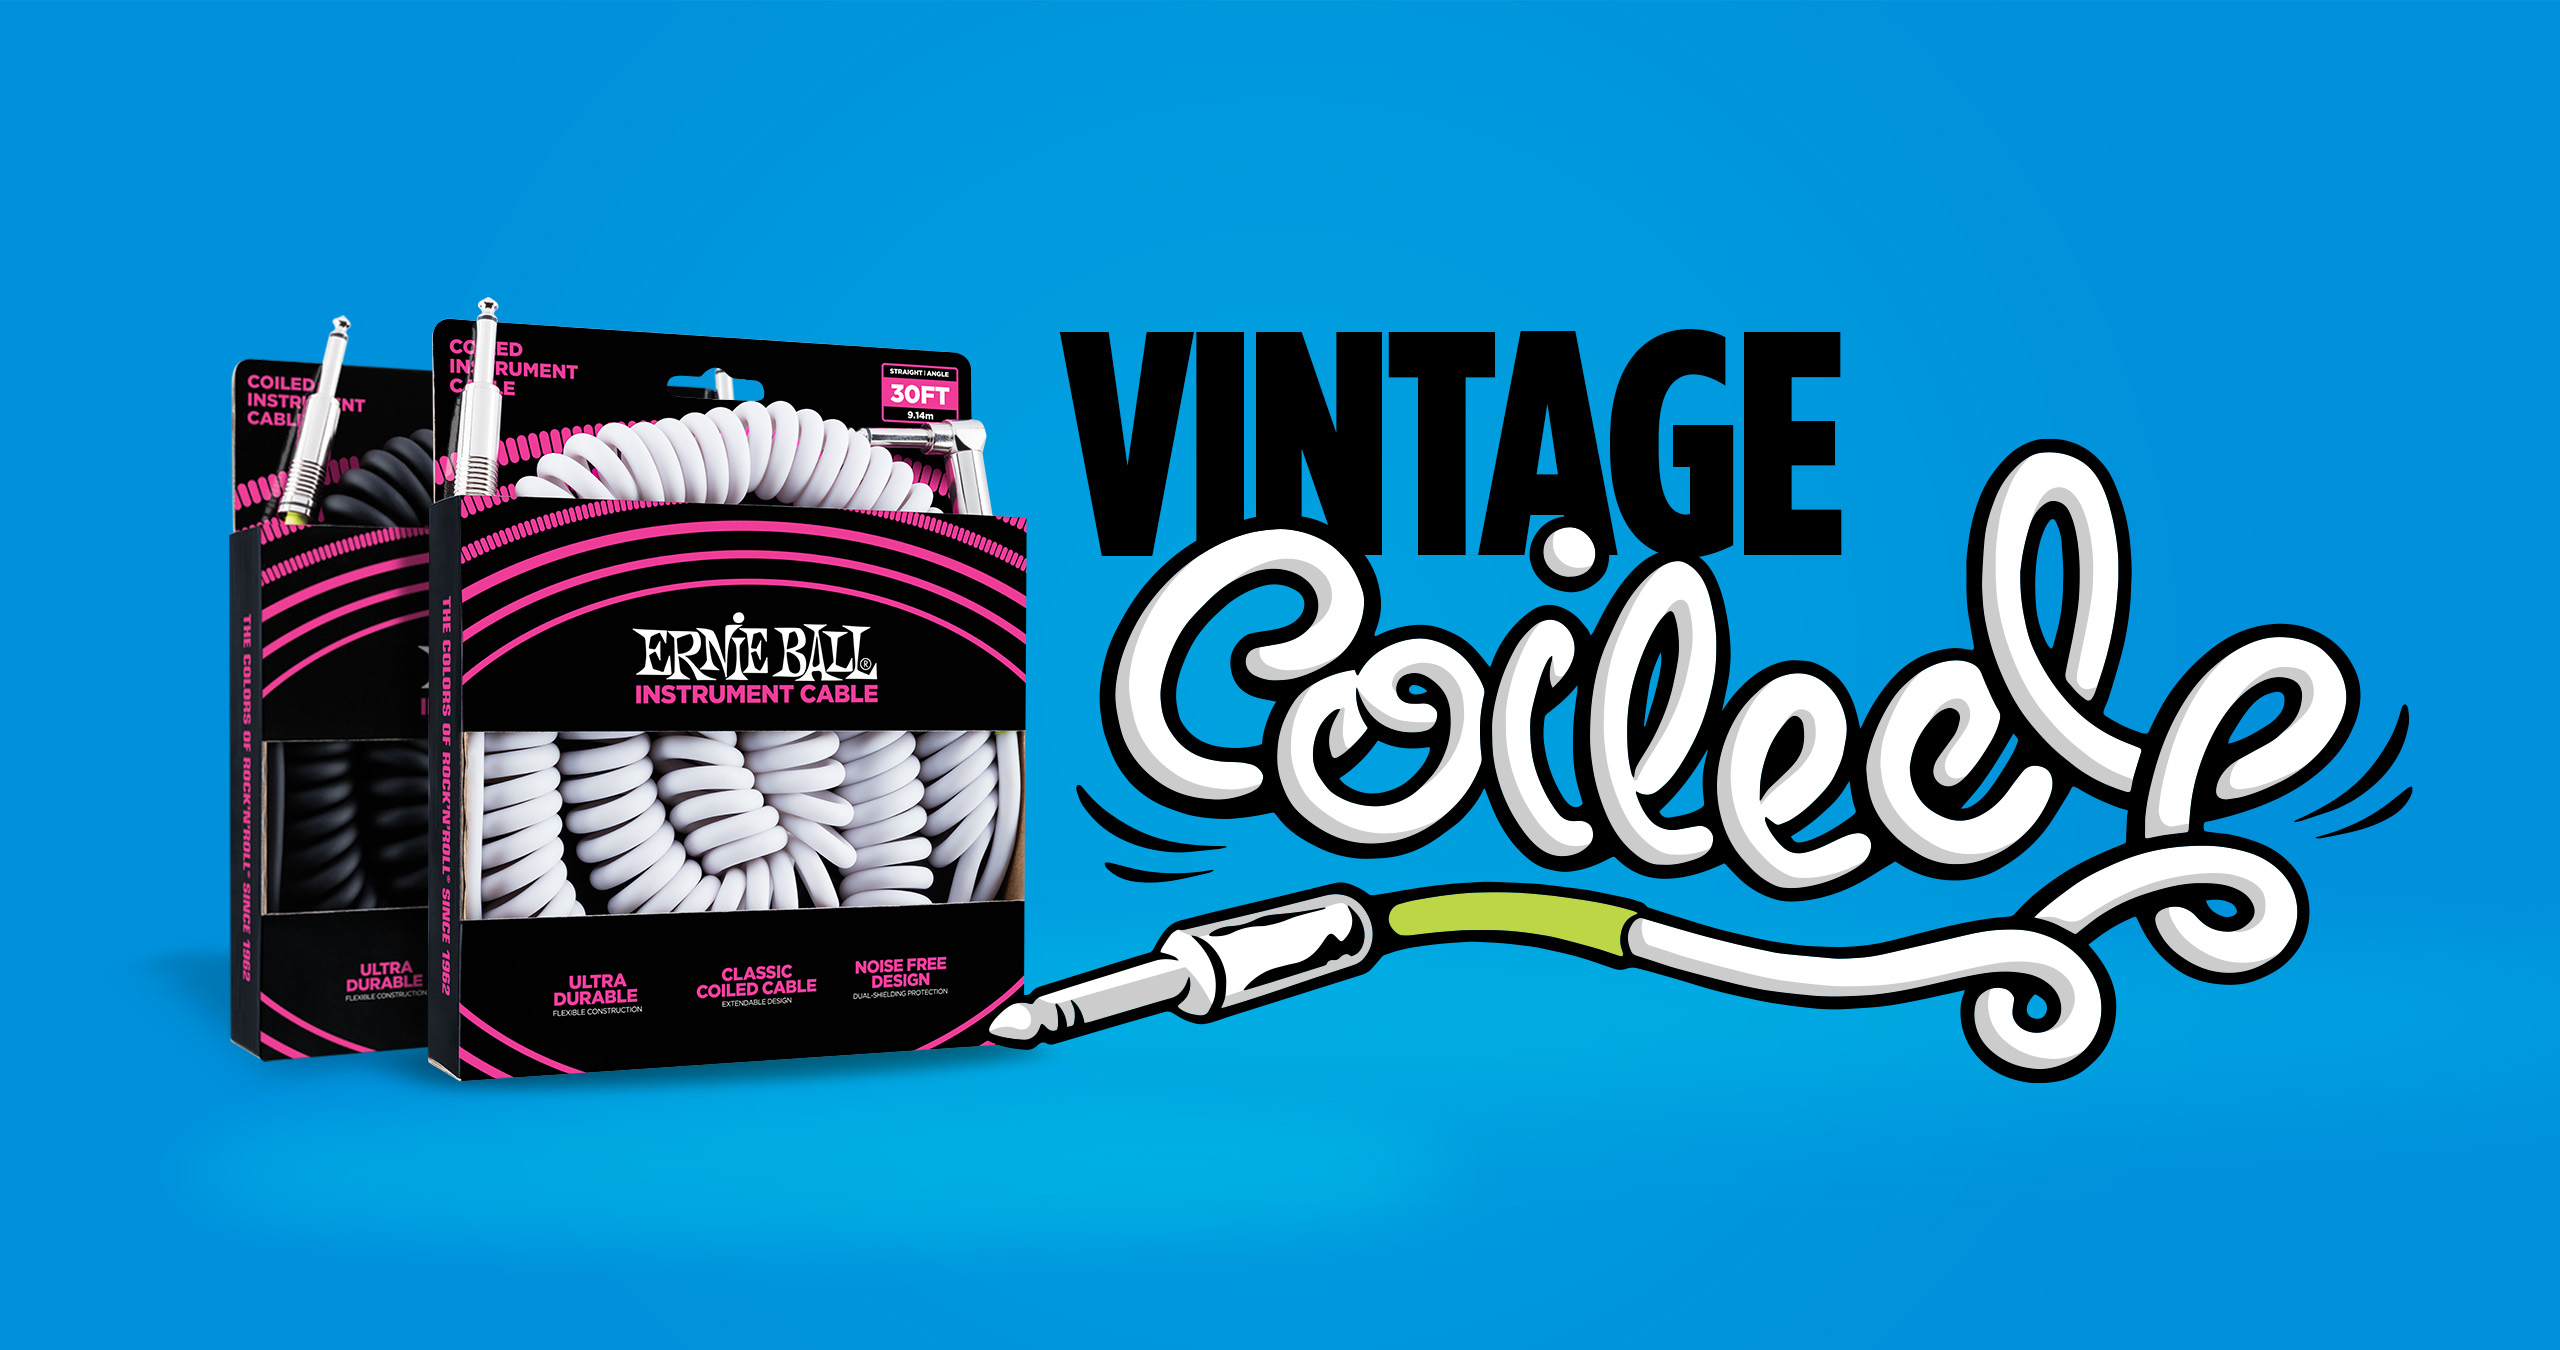 Coiled Cables Ernie Ball